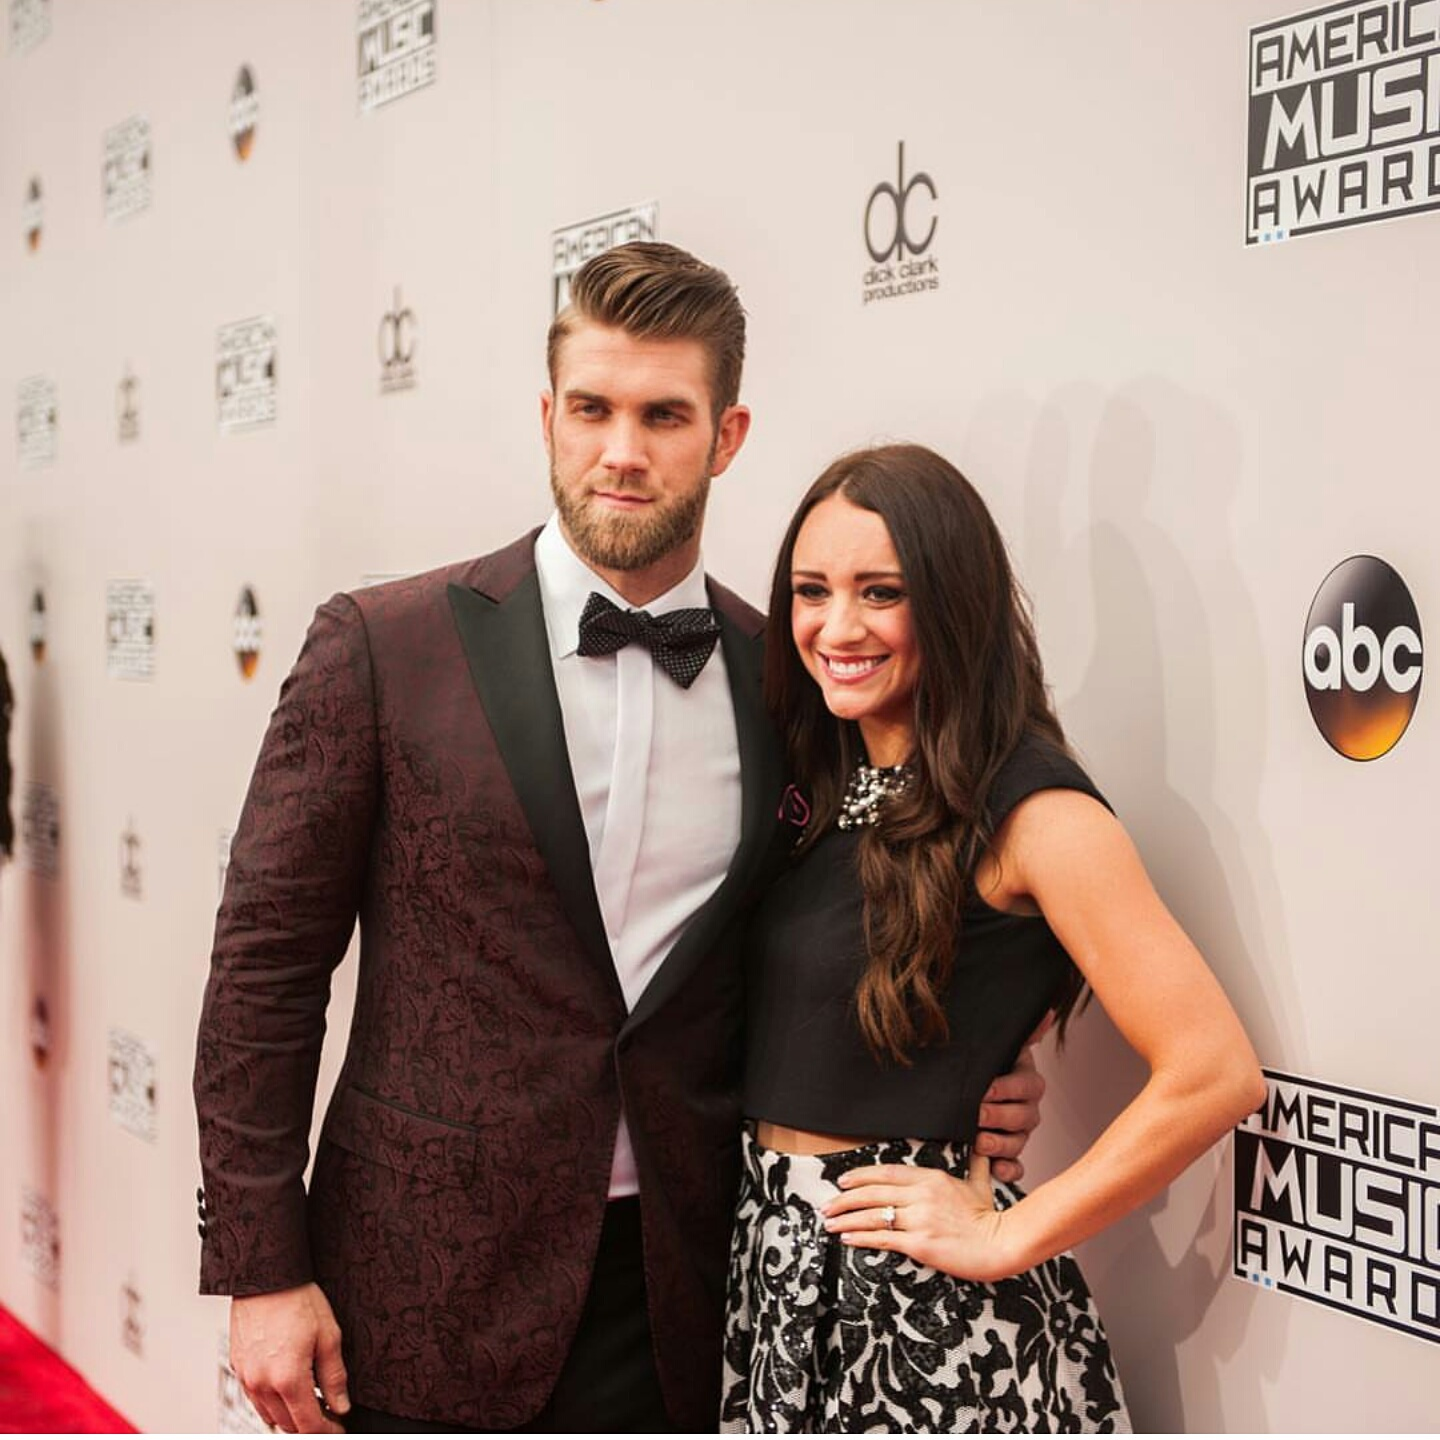 STYLE: MLB Bryce Harper Attends 2016 AMAs Award Show, Says It Only Took Him 20 Minutes To Get Ready